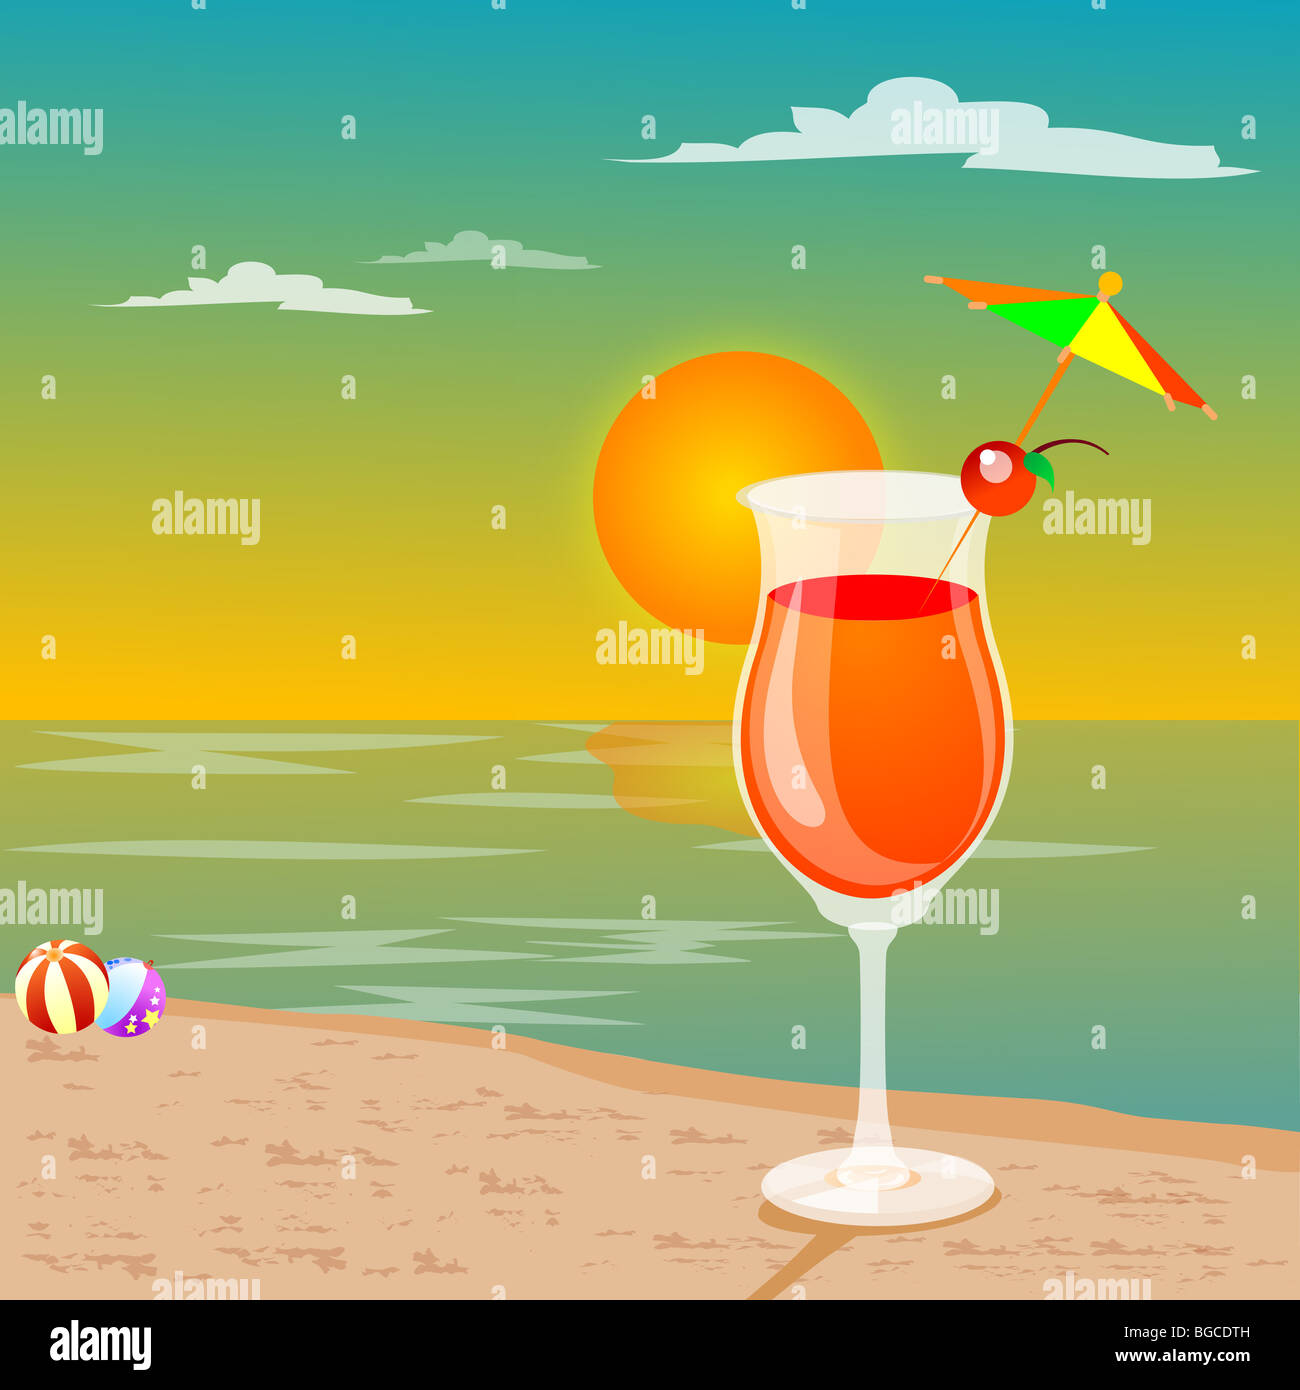 leisures at beach - drink, beach ball, view of sun - Stock Image